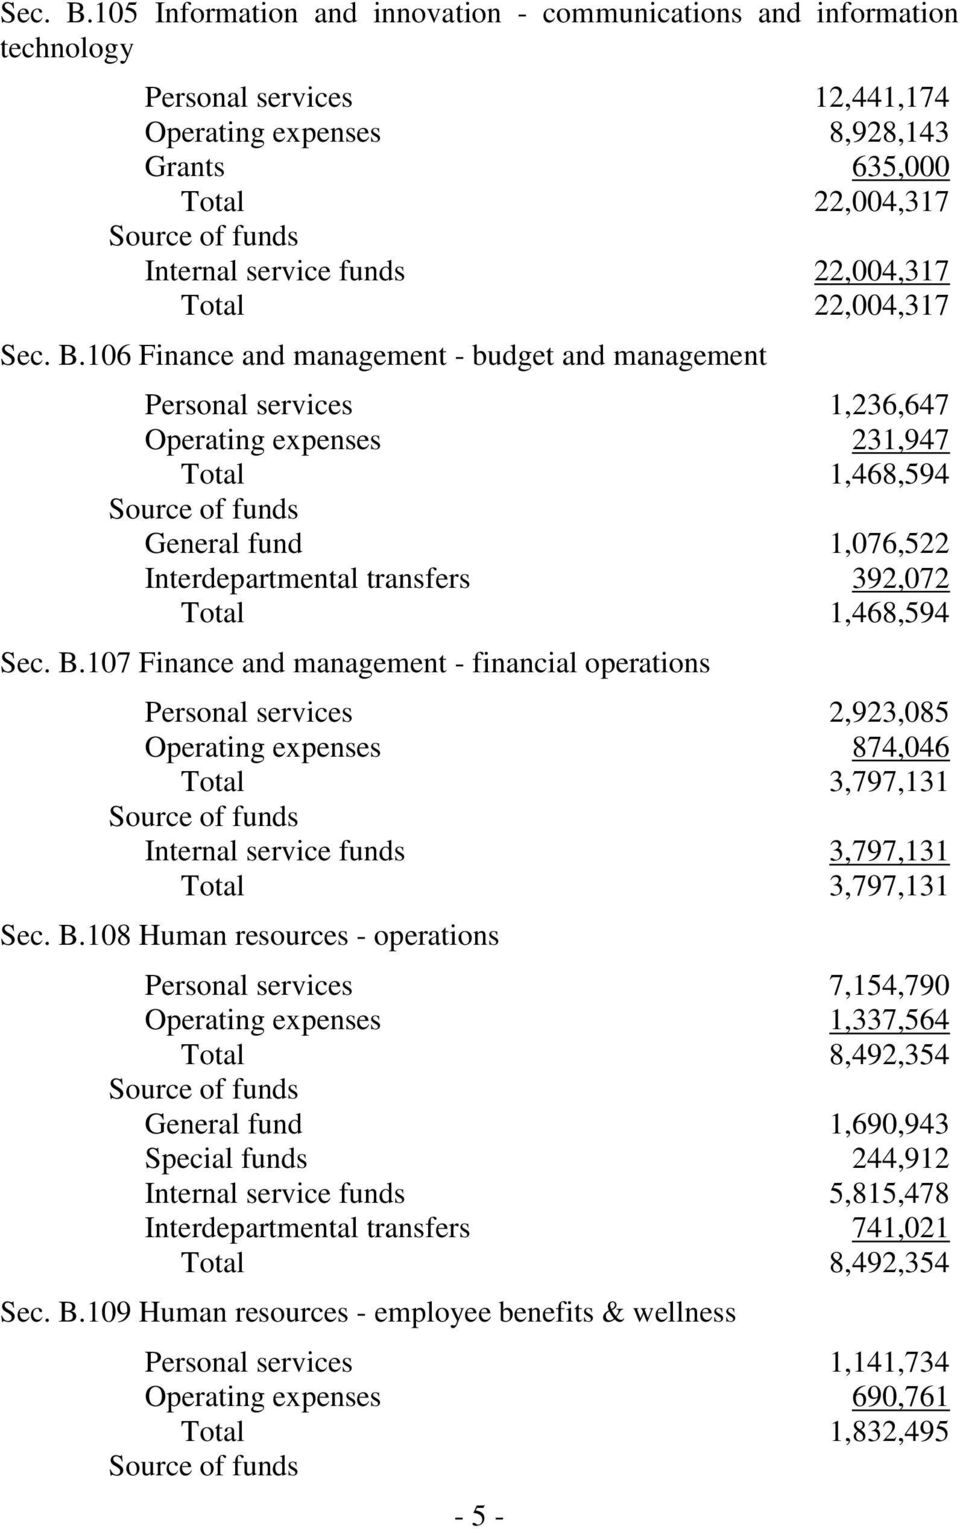 Total 22,004,317 106 Finance and management - budget and management Personal services 1,236,647 Operating expenses 231,947 Total 1,468,594 General fund 1,076,522 Interdepartmental transfers 392,072